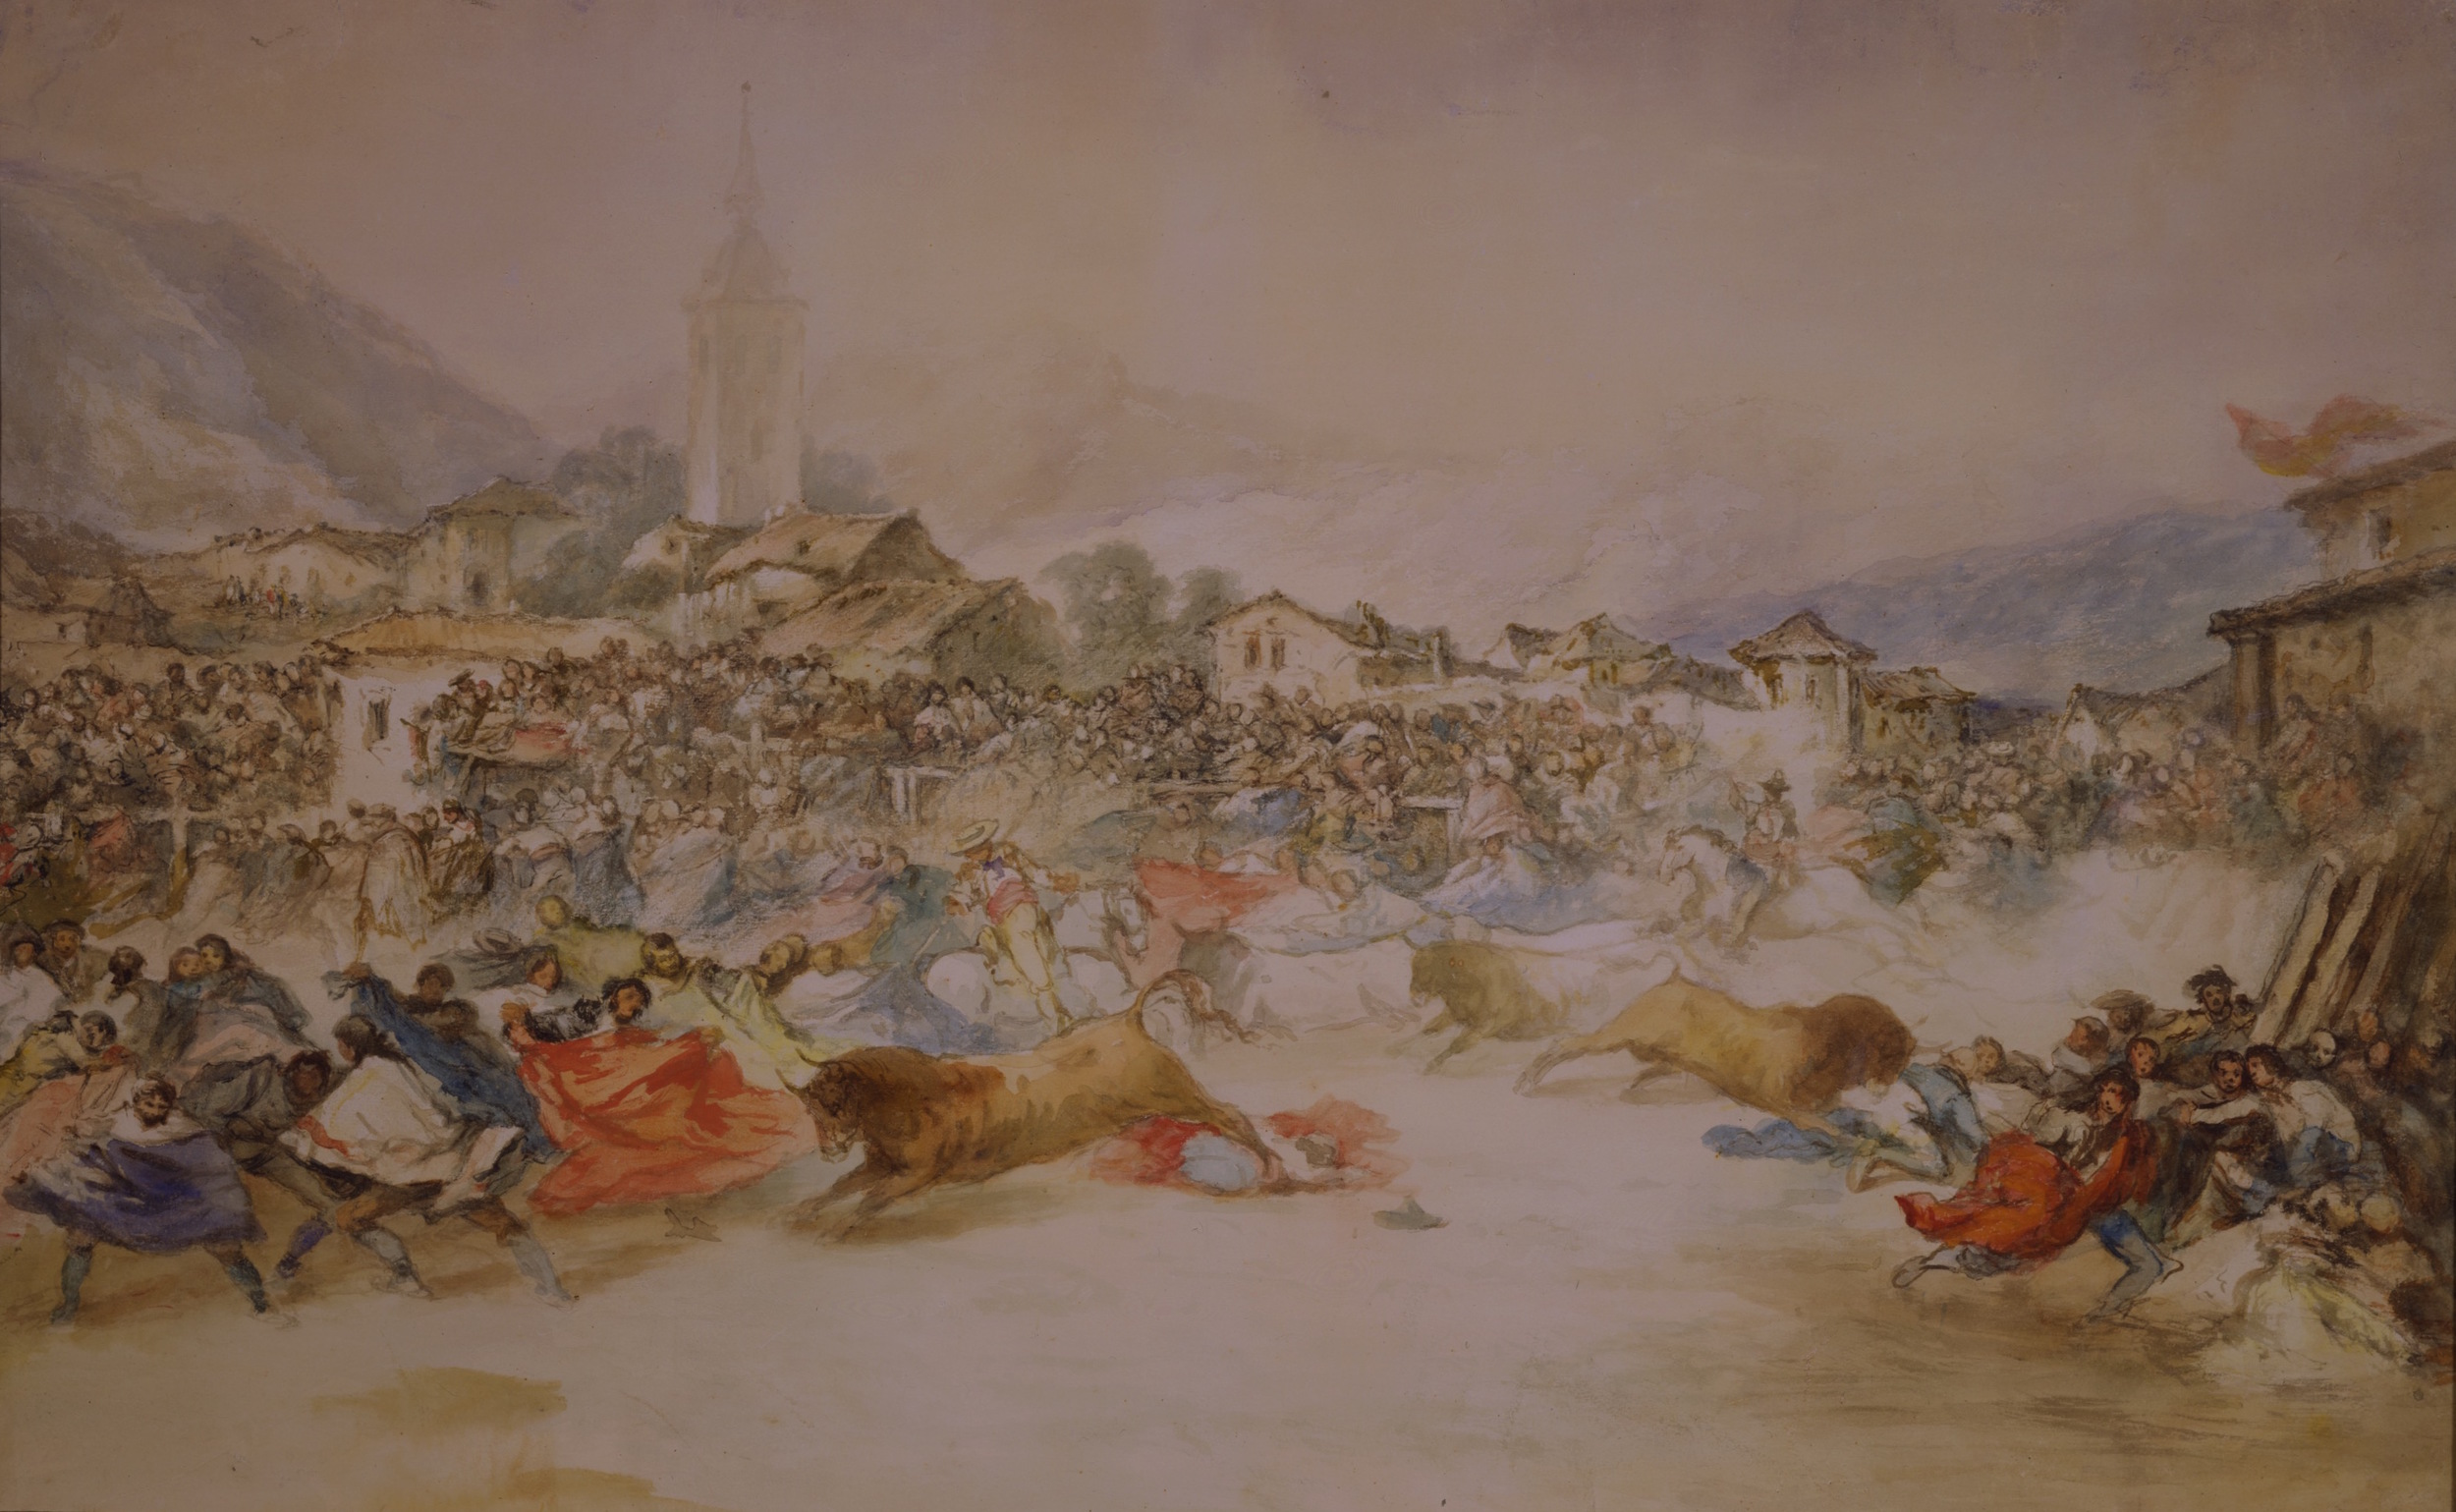 Eugenio Lucas y Padilla – Running the Bulls in the Main Square of a Spanish Village